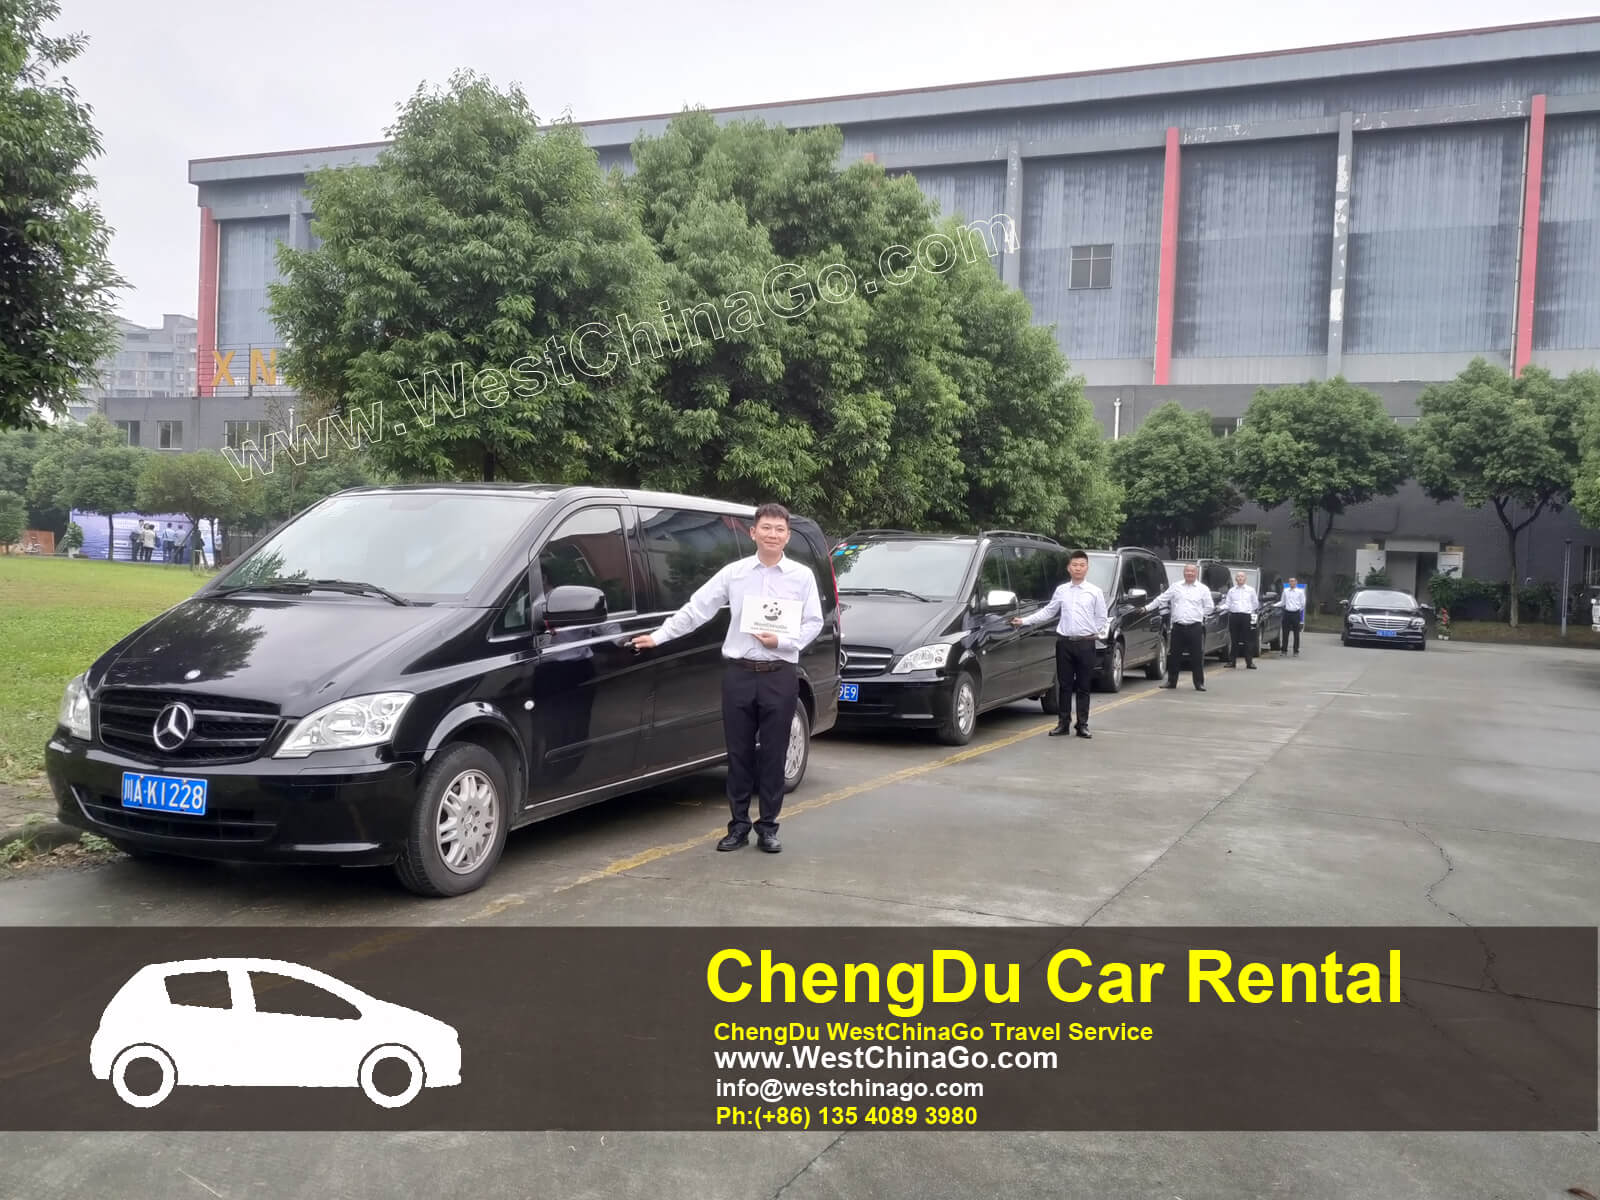 ChengDu Charter Car, car rental